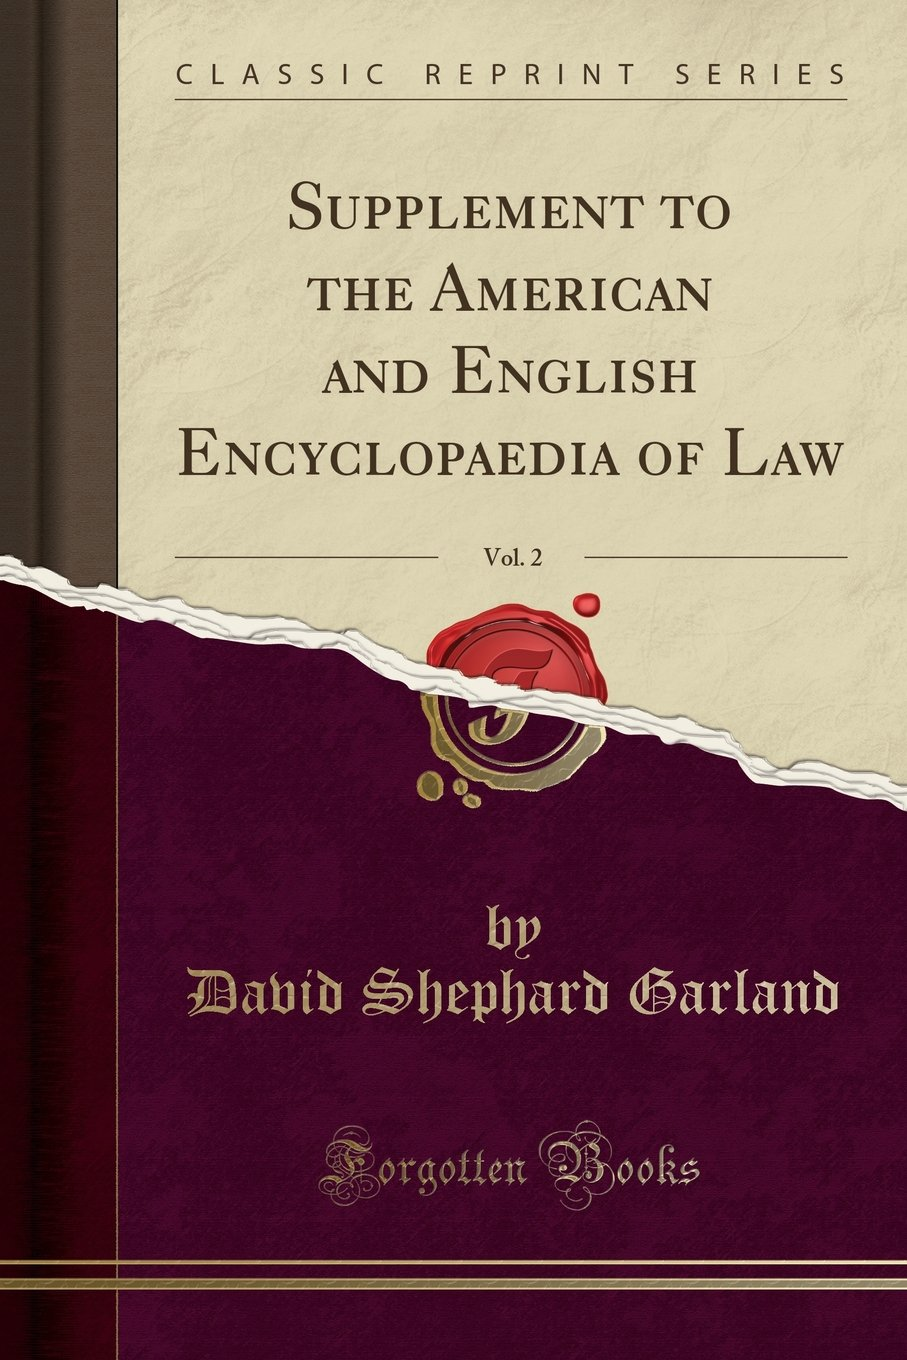 Supplement to the American and English Encyclopaedia of Law, Vol. 2 (Classic Reprint) ebook